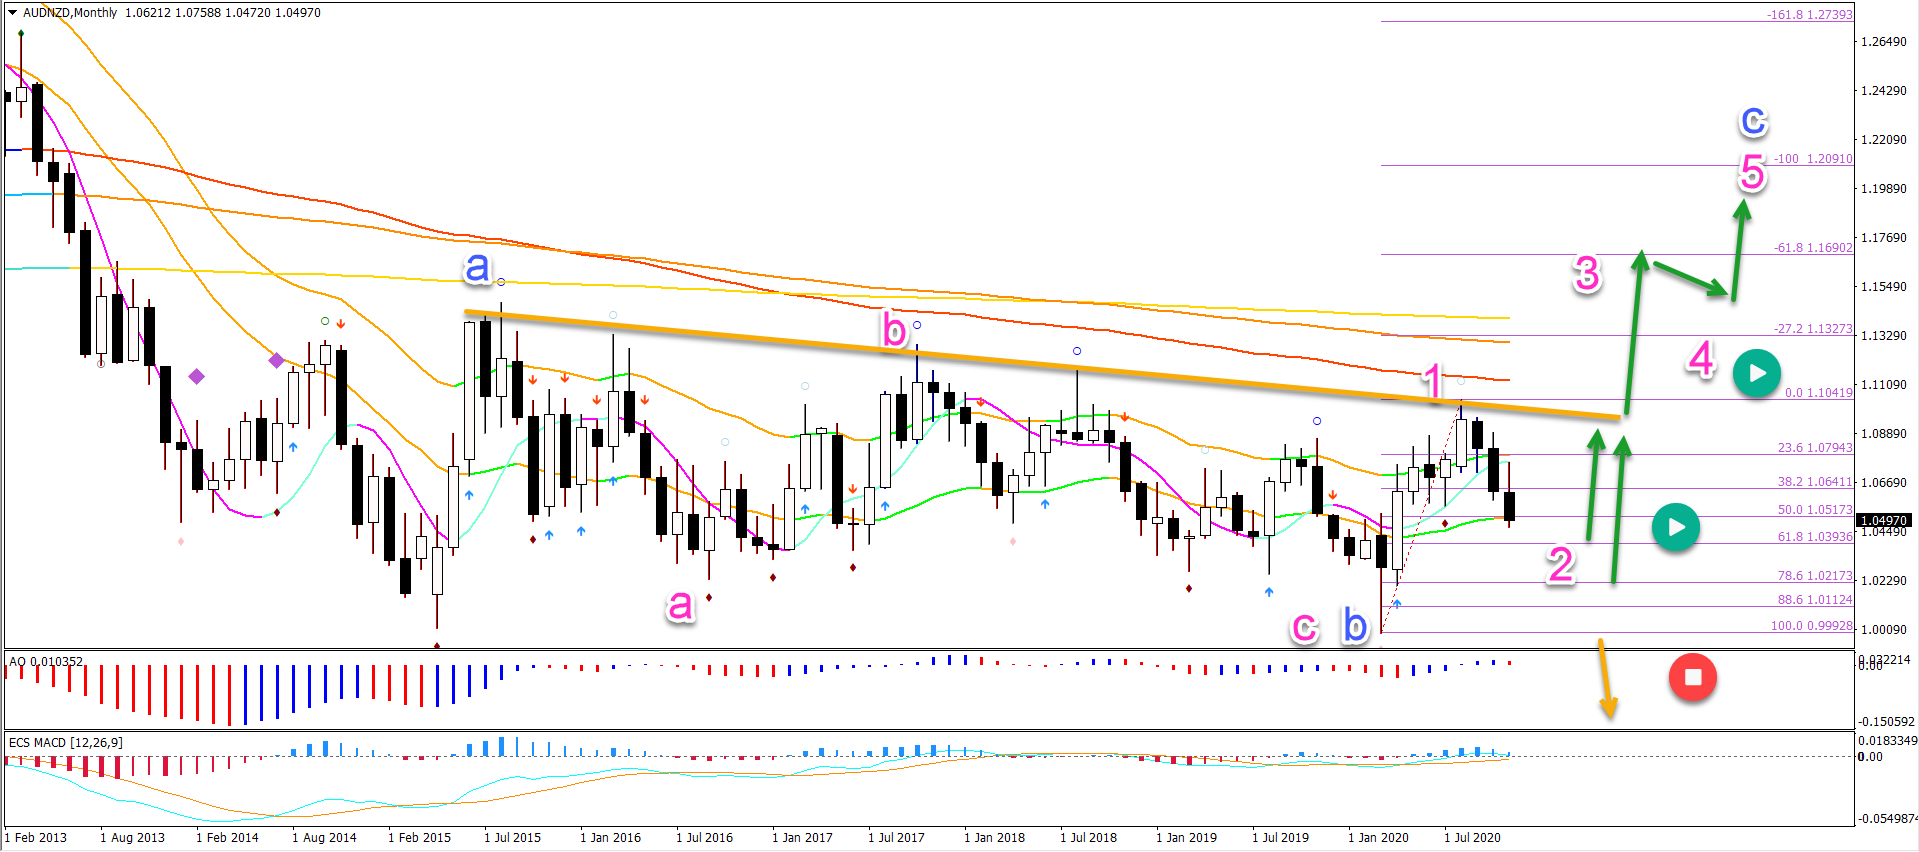 AUD/NZD Monthly chart 30.11.20